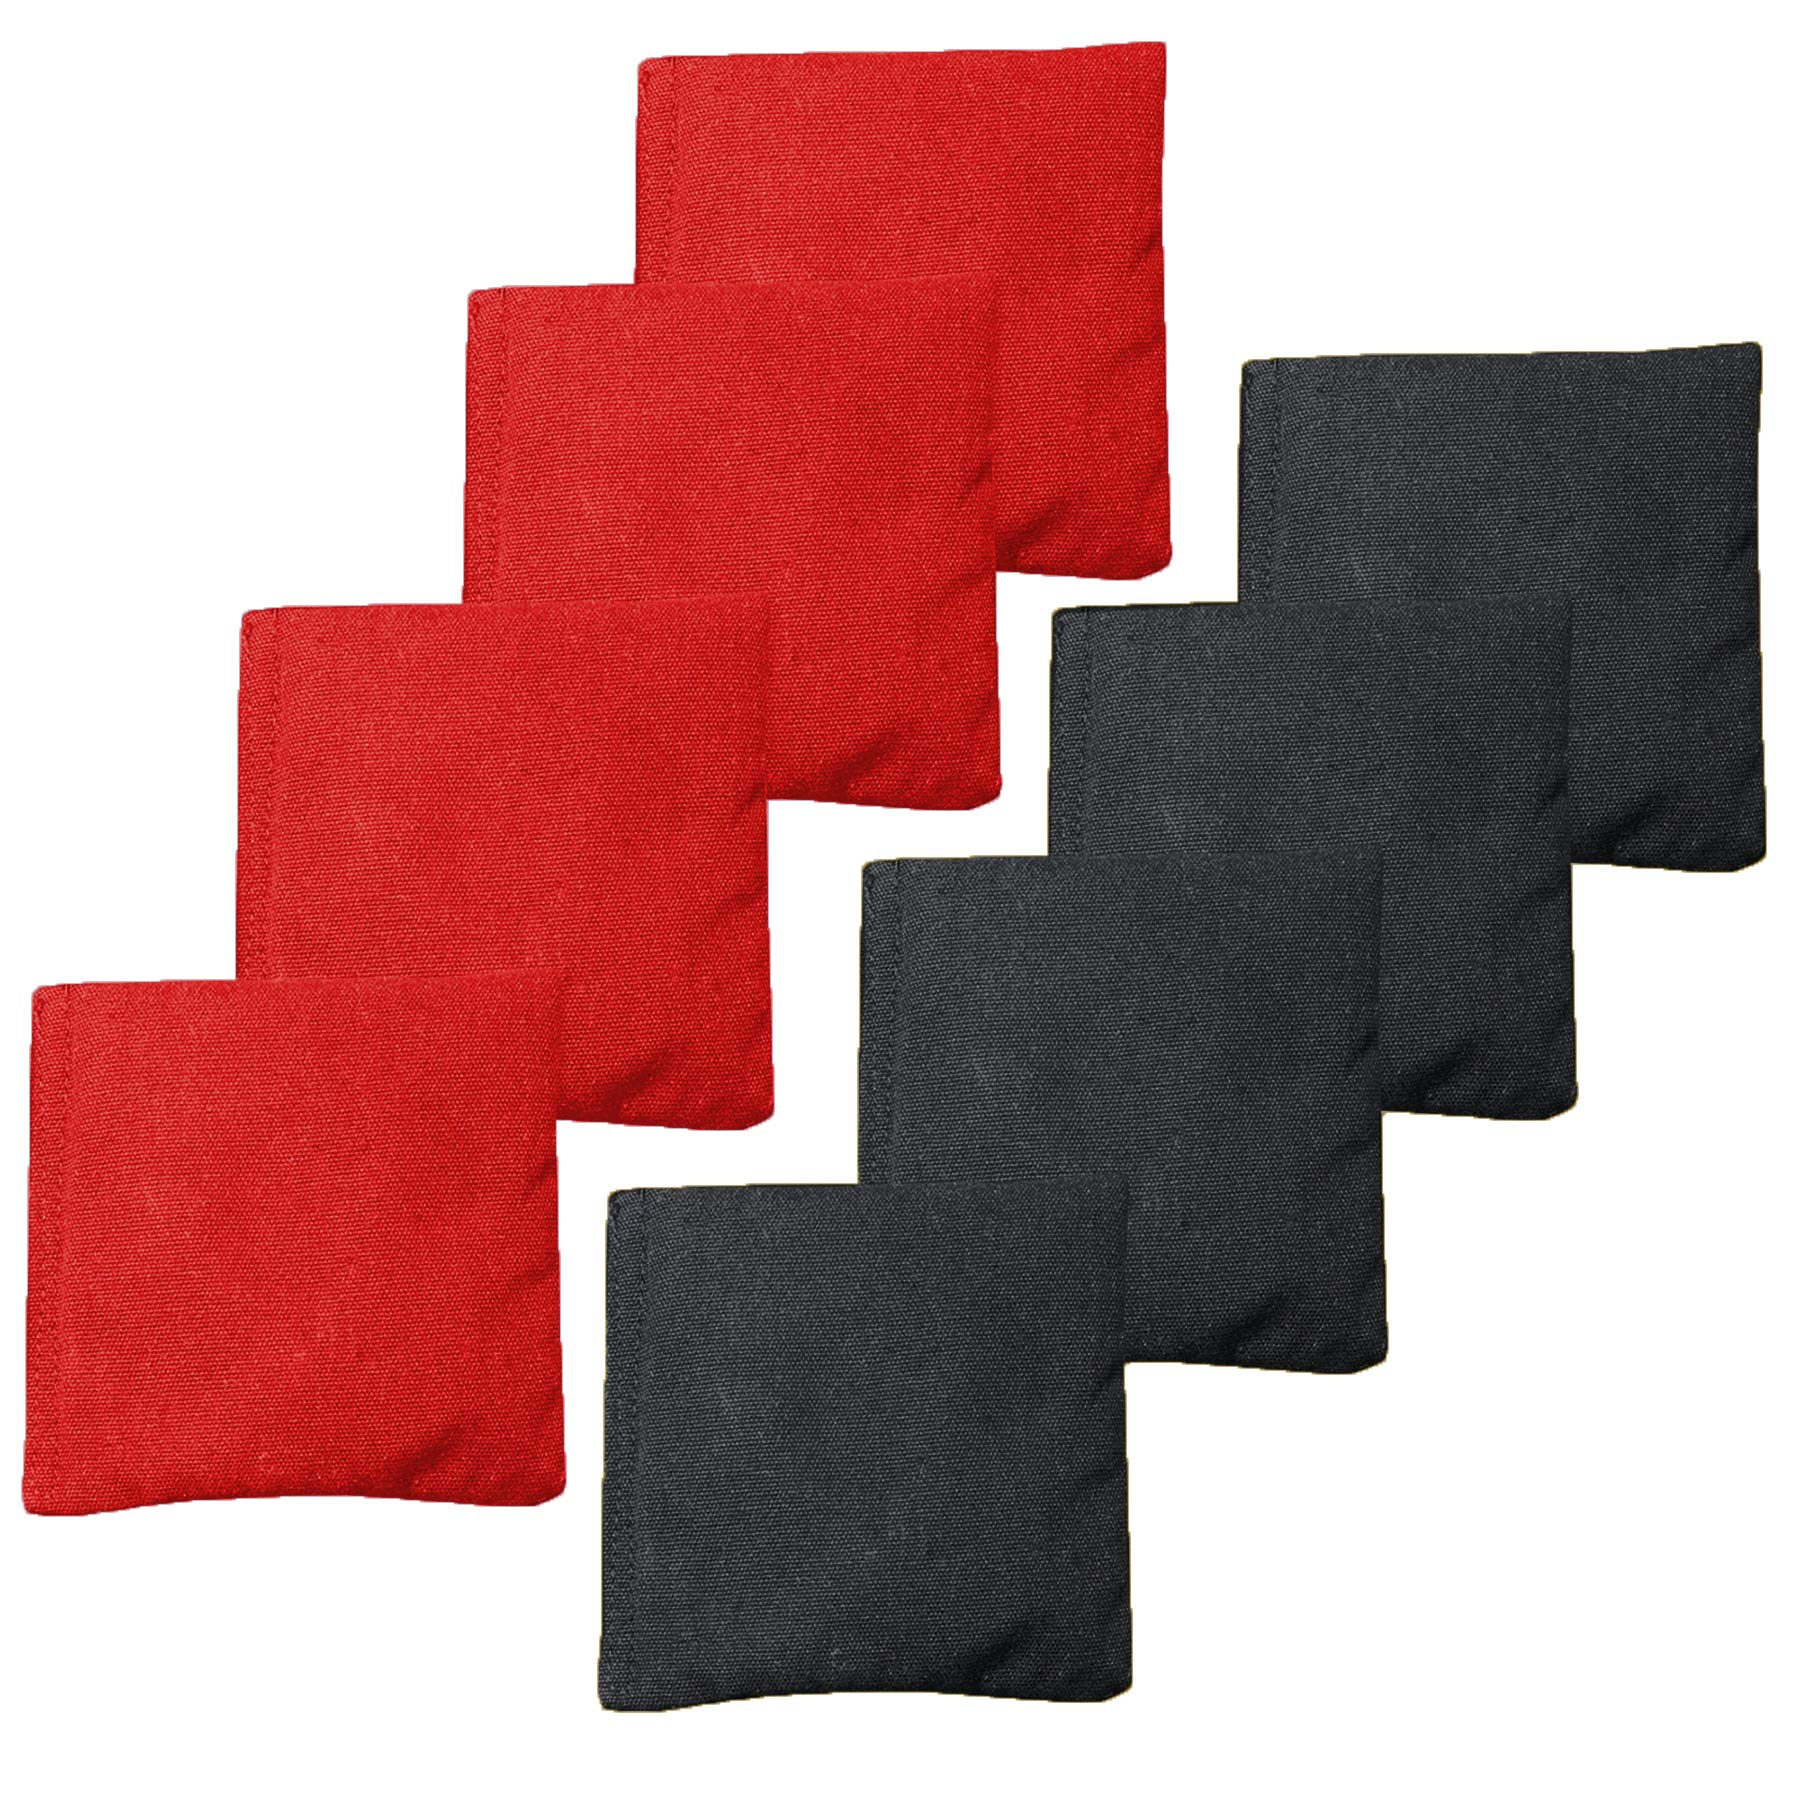 Play Platoon Premium Weather Resistant Duck Cloth Cornhole Bags - Set of 8 Bean Bags for Corn Hole Game - 4 Red & 4 Black. by Play Platoon